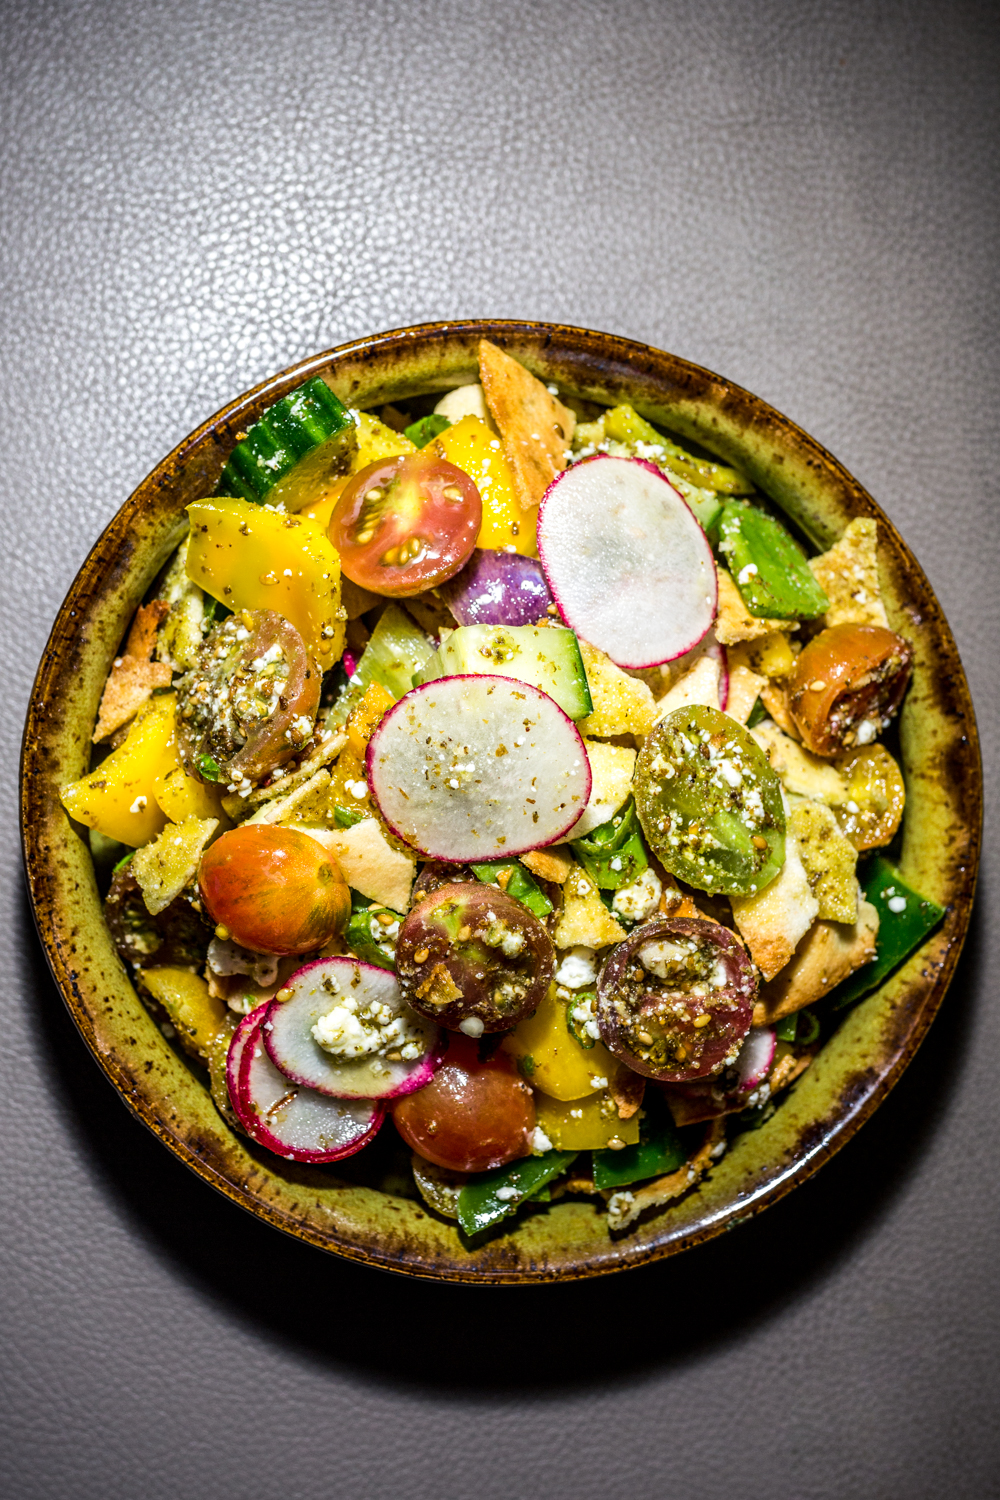 Fattoush 2.0: yellow peppers, radish, tomato, scallion, cucumber, za'atar, warm pita, cheese, and lemon / Image: Catherine Viox{ }// Published: 9.30.19